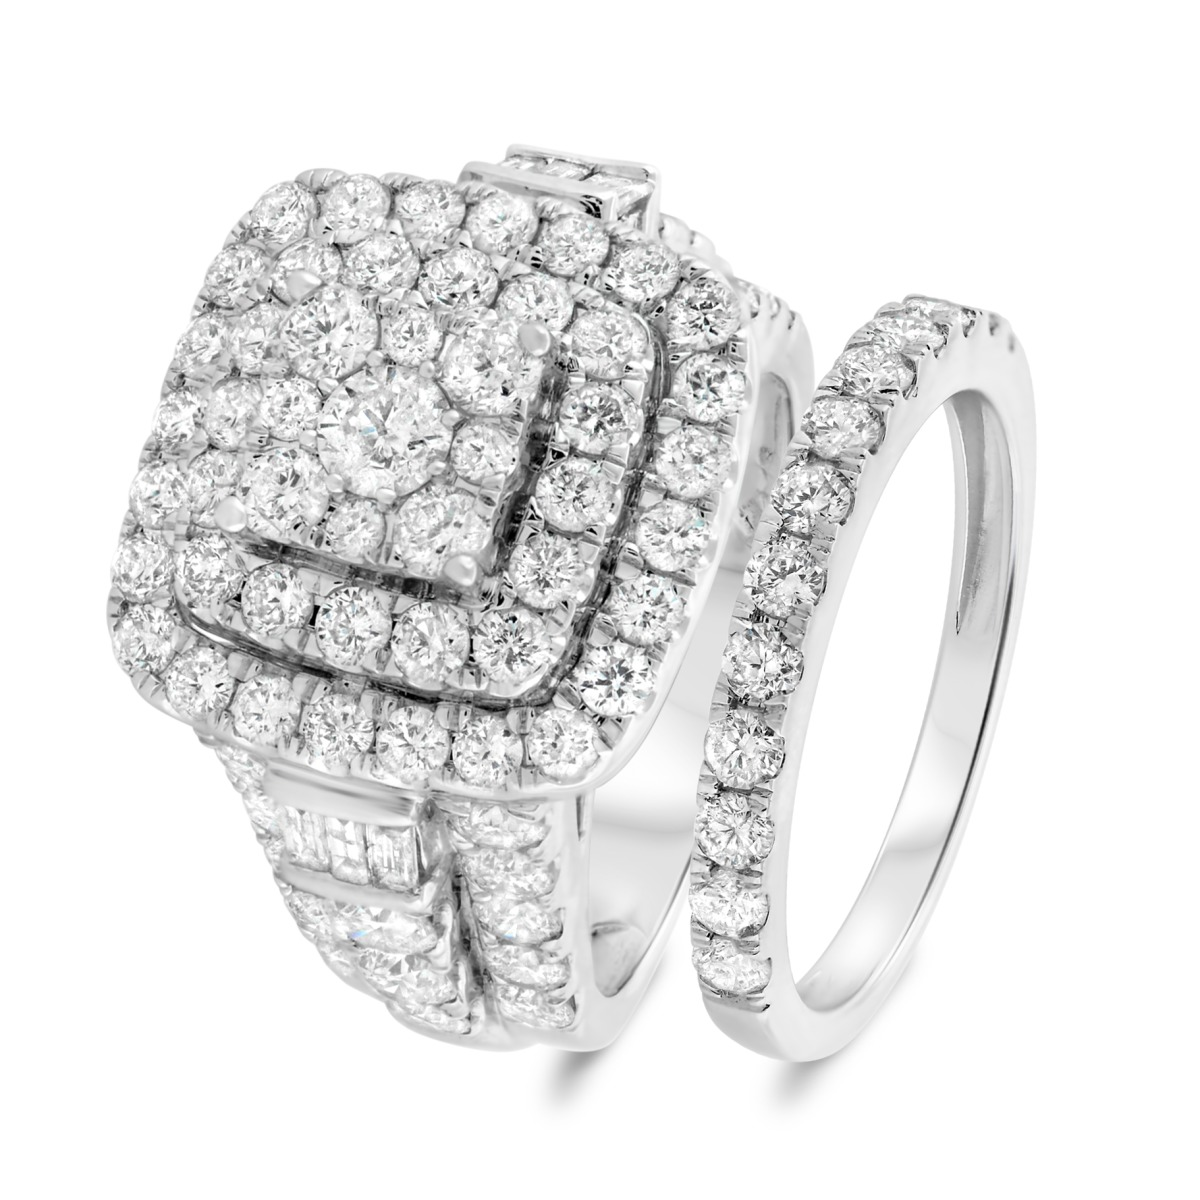 4 3/4 Carat T.W. Diamond Matching Bridal Ring Set 14K White Gold